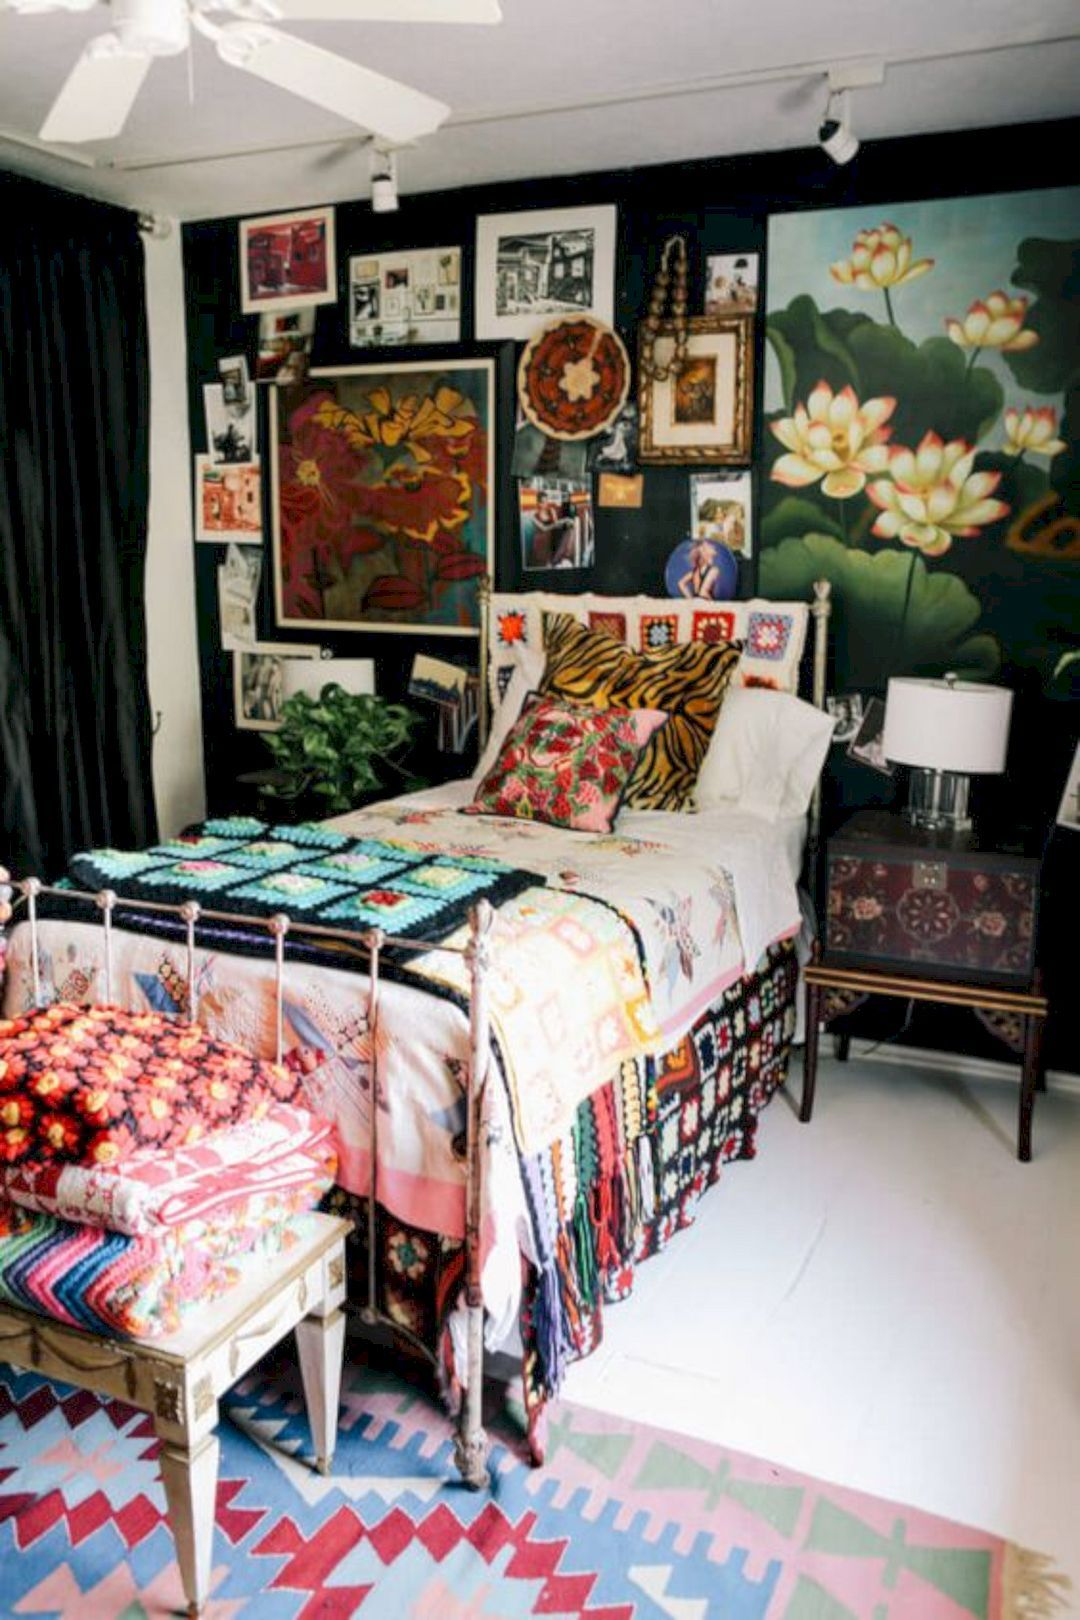 Bon 16 Inspiring Room Decoration Ideas To Bring Out Eclectic Feels At Home